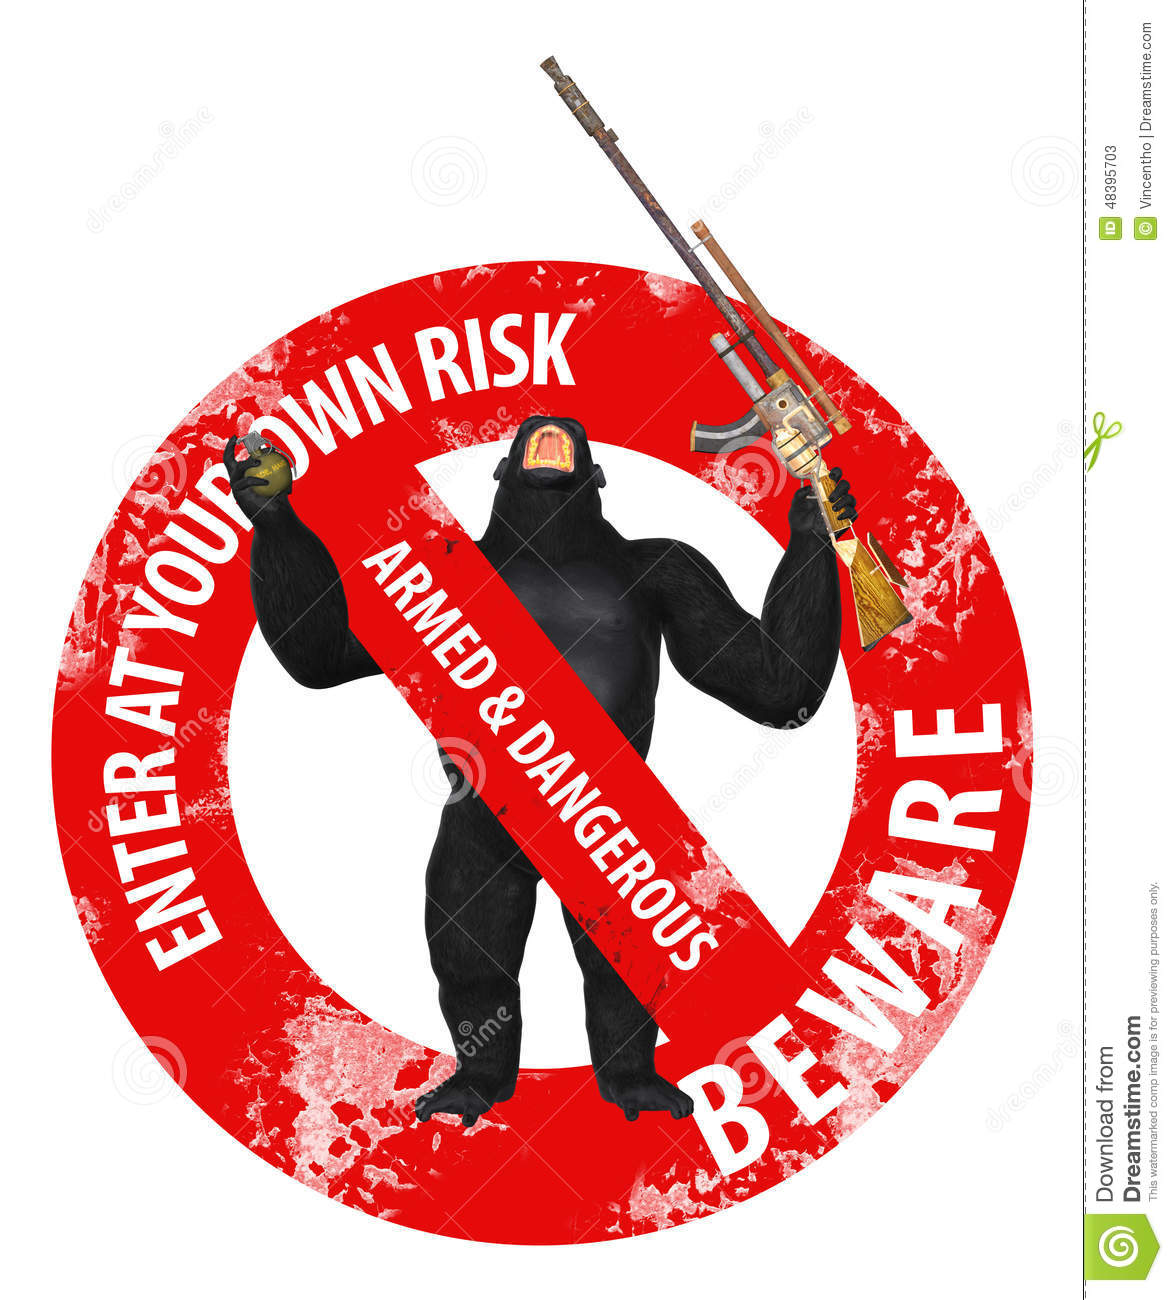 Gorilla Enter At Your Own Risk Forbidden Illustration Stock Photo.